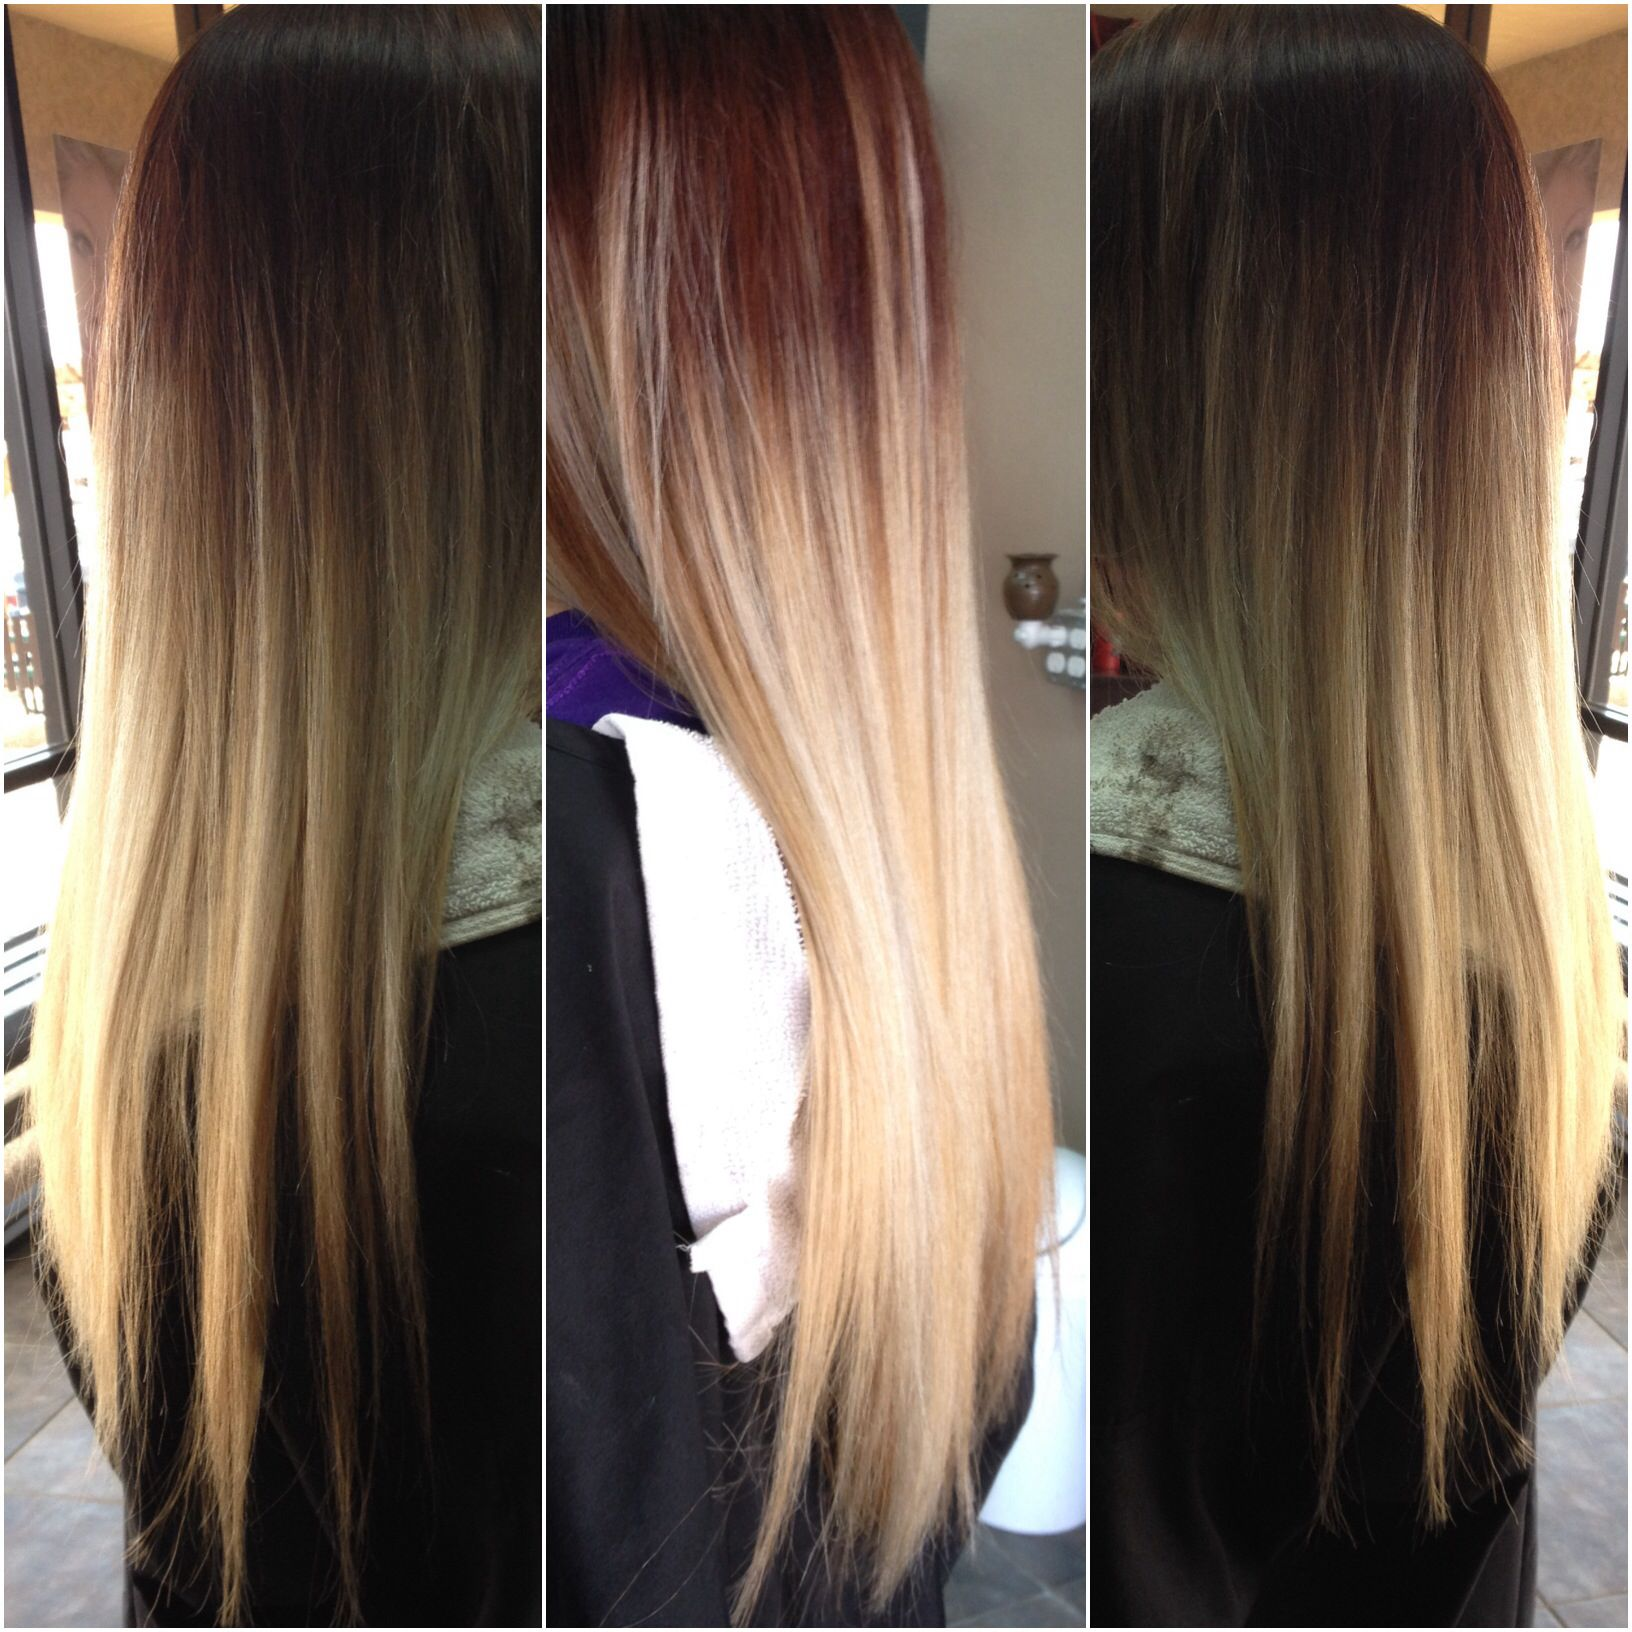 Ombré for graduation as a hairdresser I am so happy to cross these milestones with my clients